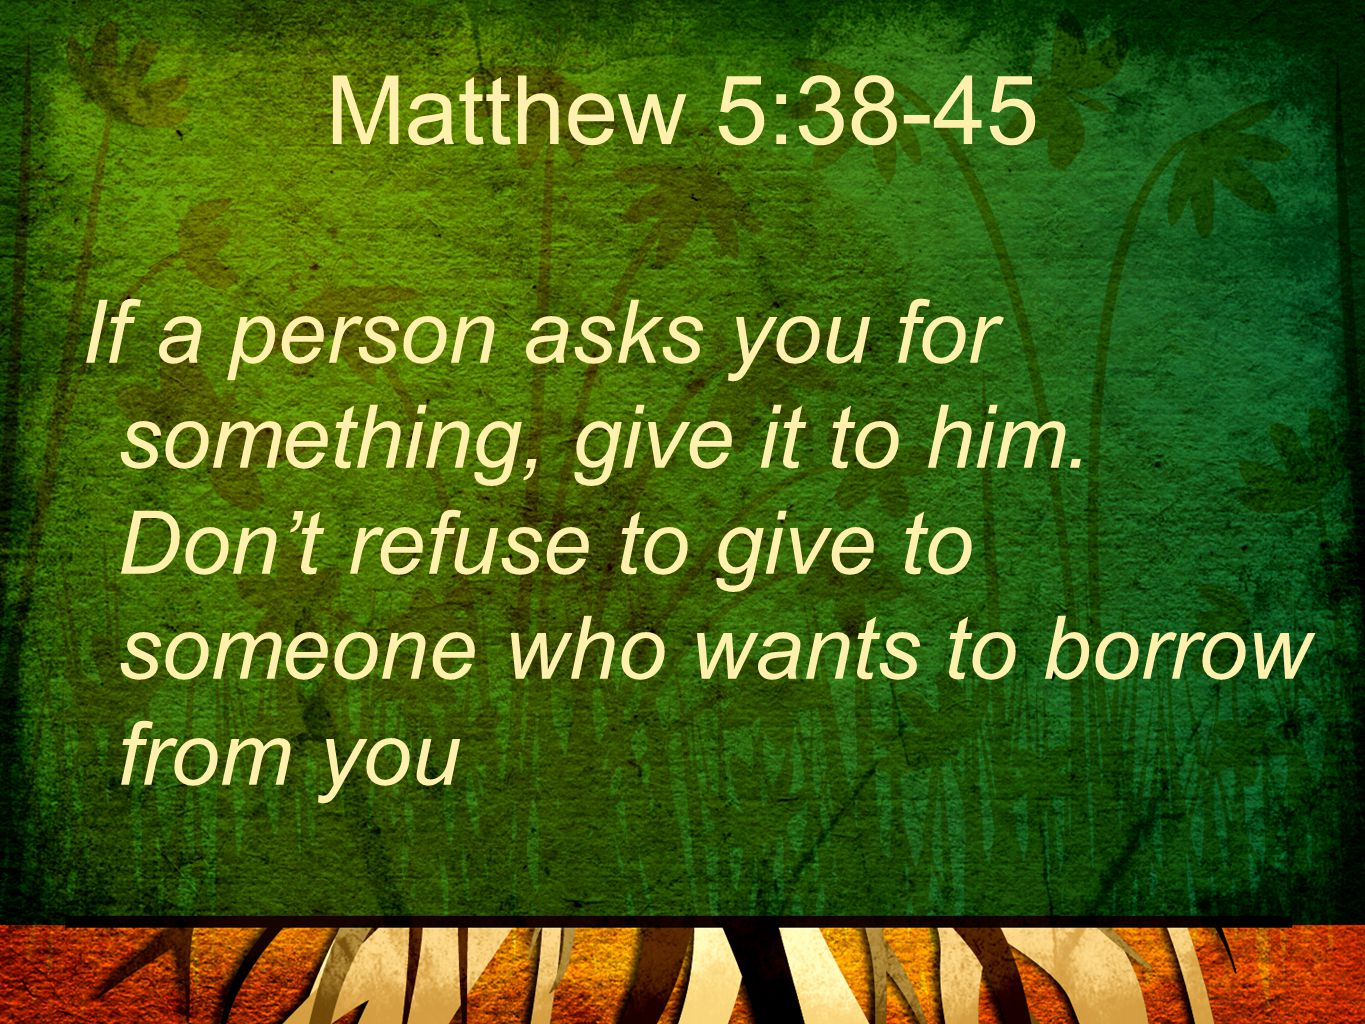 Matthew 5:38-45 If a person asks you for something, give it to him. Don't refuse to give to someone who wants to borrow from you